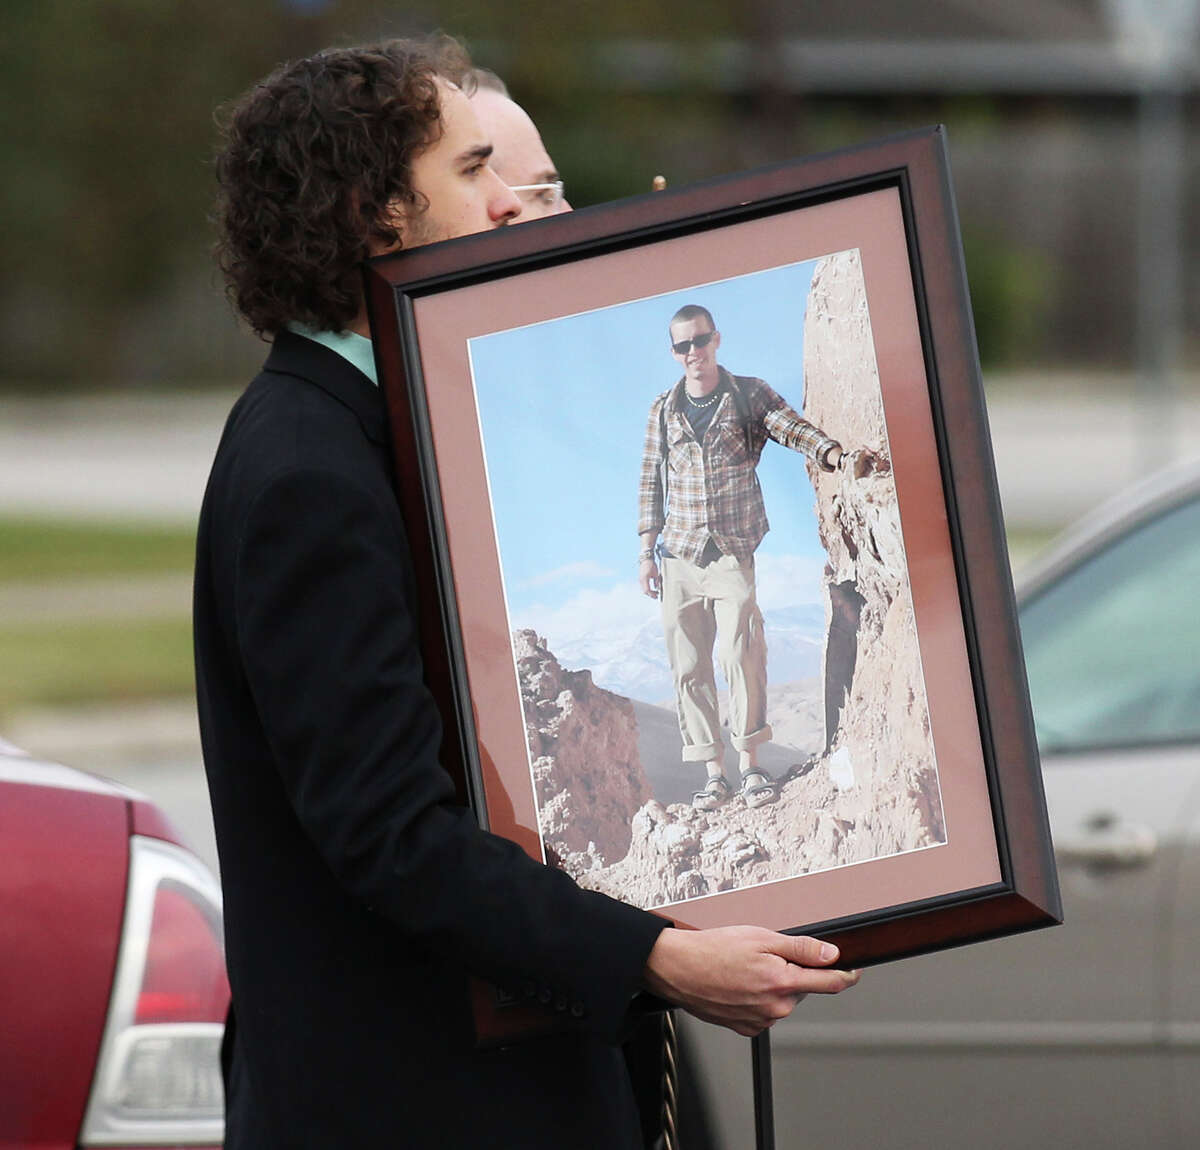 An image of Cameron Redus is carried away after a funeral service for Redus at Memorial Baptist Church in Baytown, Texas on Thursday, Dec. 12, 2013. Redus died of gunshot wounds from a University of Incarnate Word campus policeman last Friday. Family and friends gathered at the church to pay their last respects to the 23-year-old. Green was Redus' favorite color and classmates made 700 ribbons to pass out to mourners at the service. (AP Photo/San Antonio Express-News, Kin Man Hui)**MAGS OUT NO SALES SAN ANTONIO OUT**